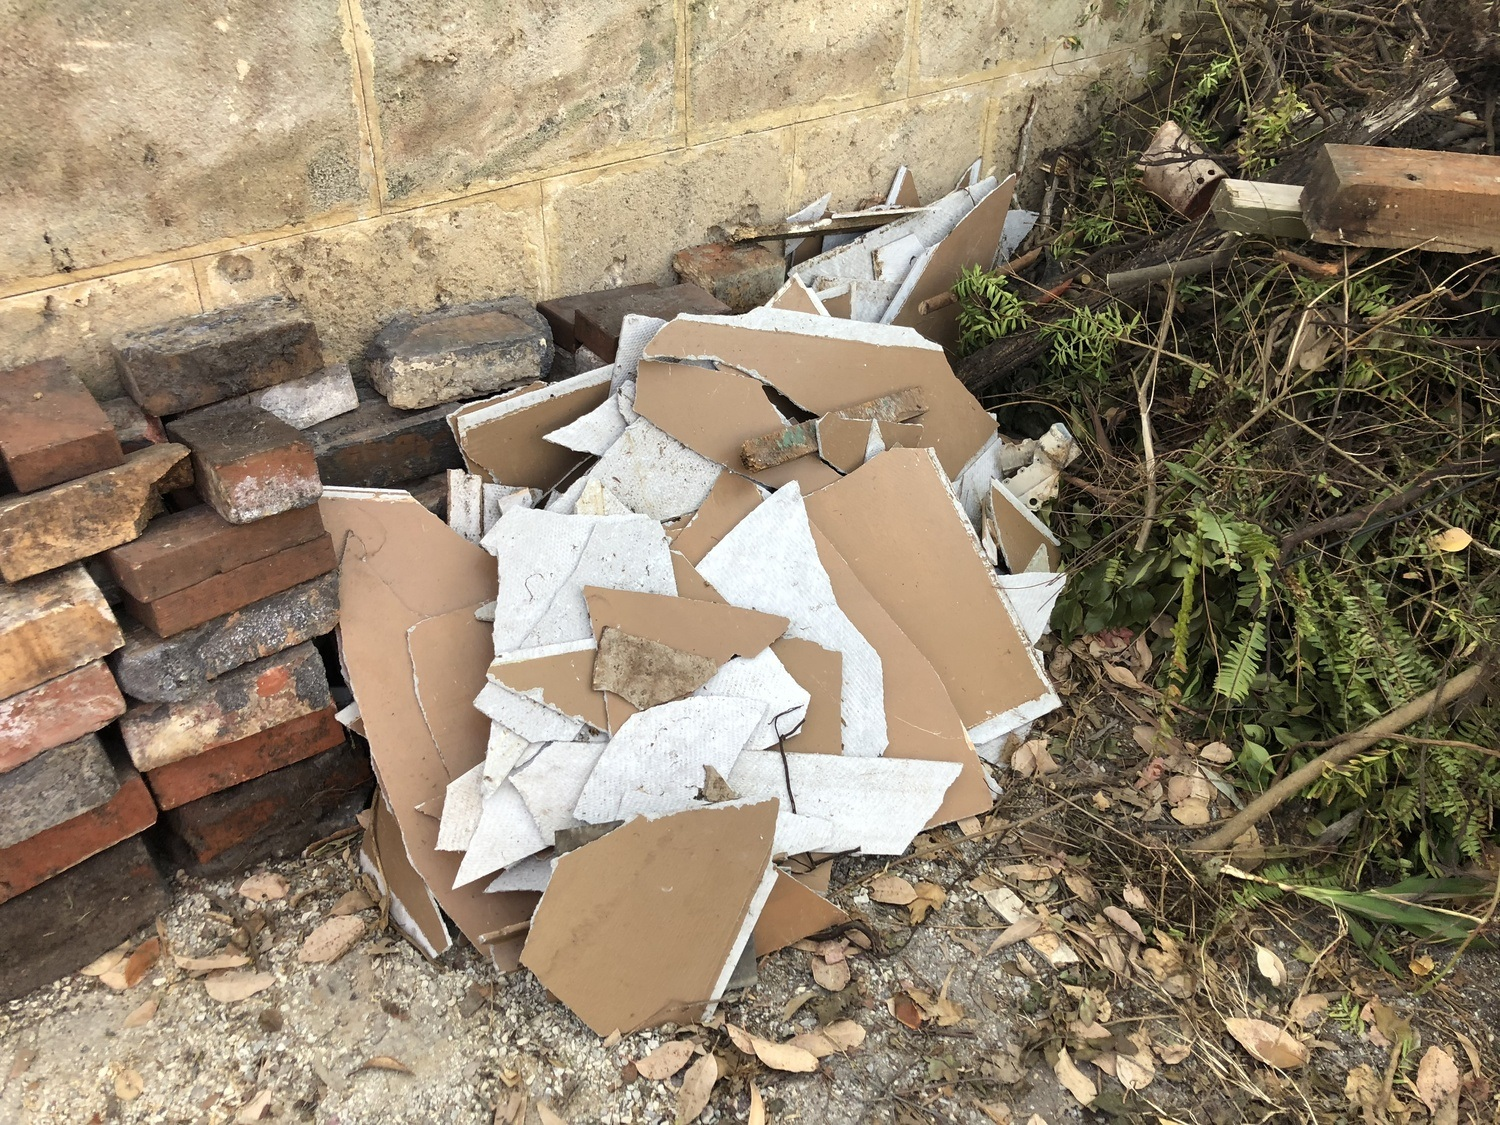 pile of asbestos materials removed from building